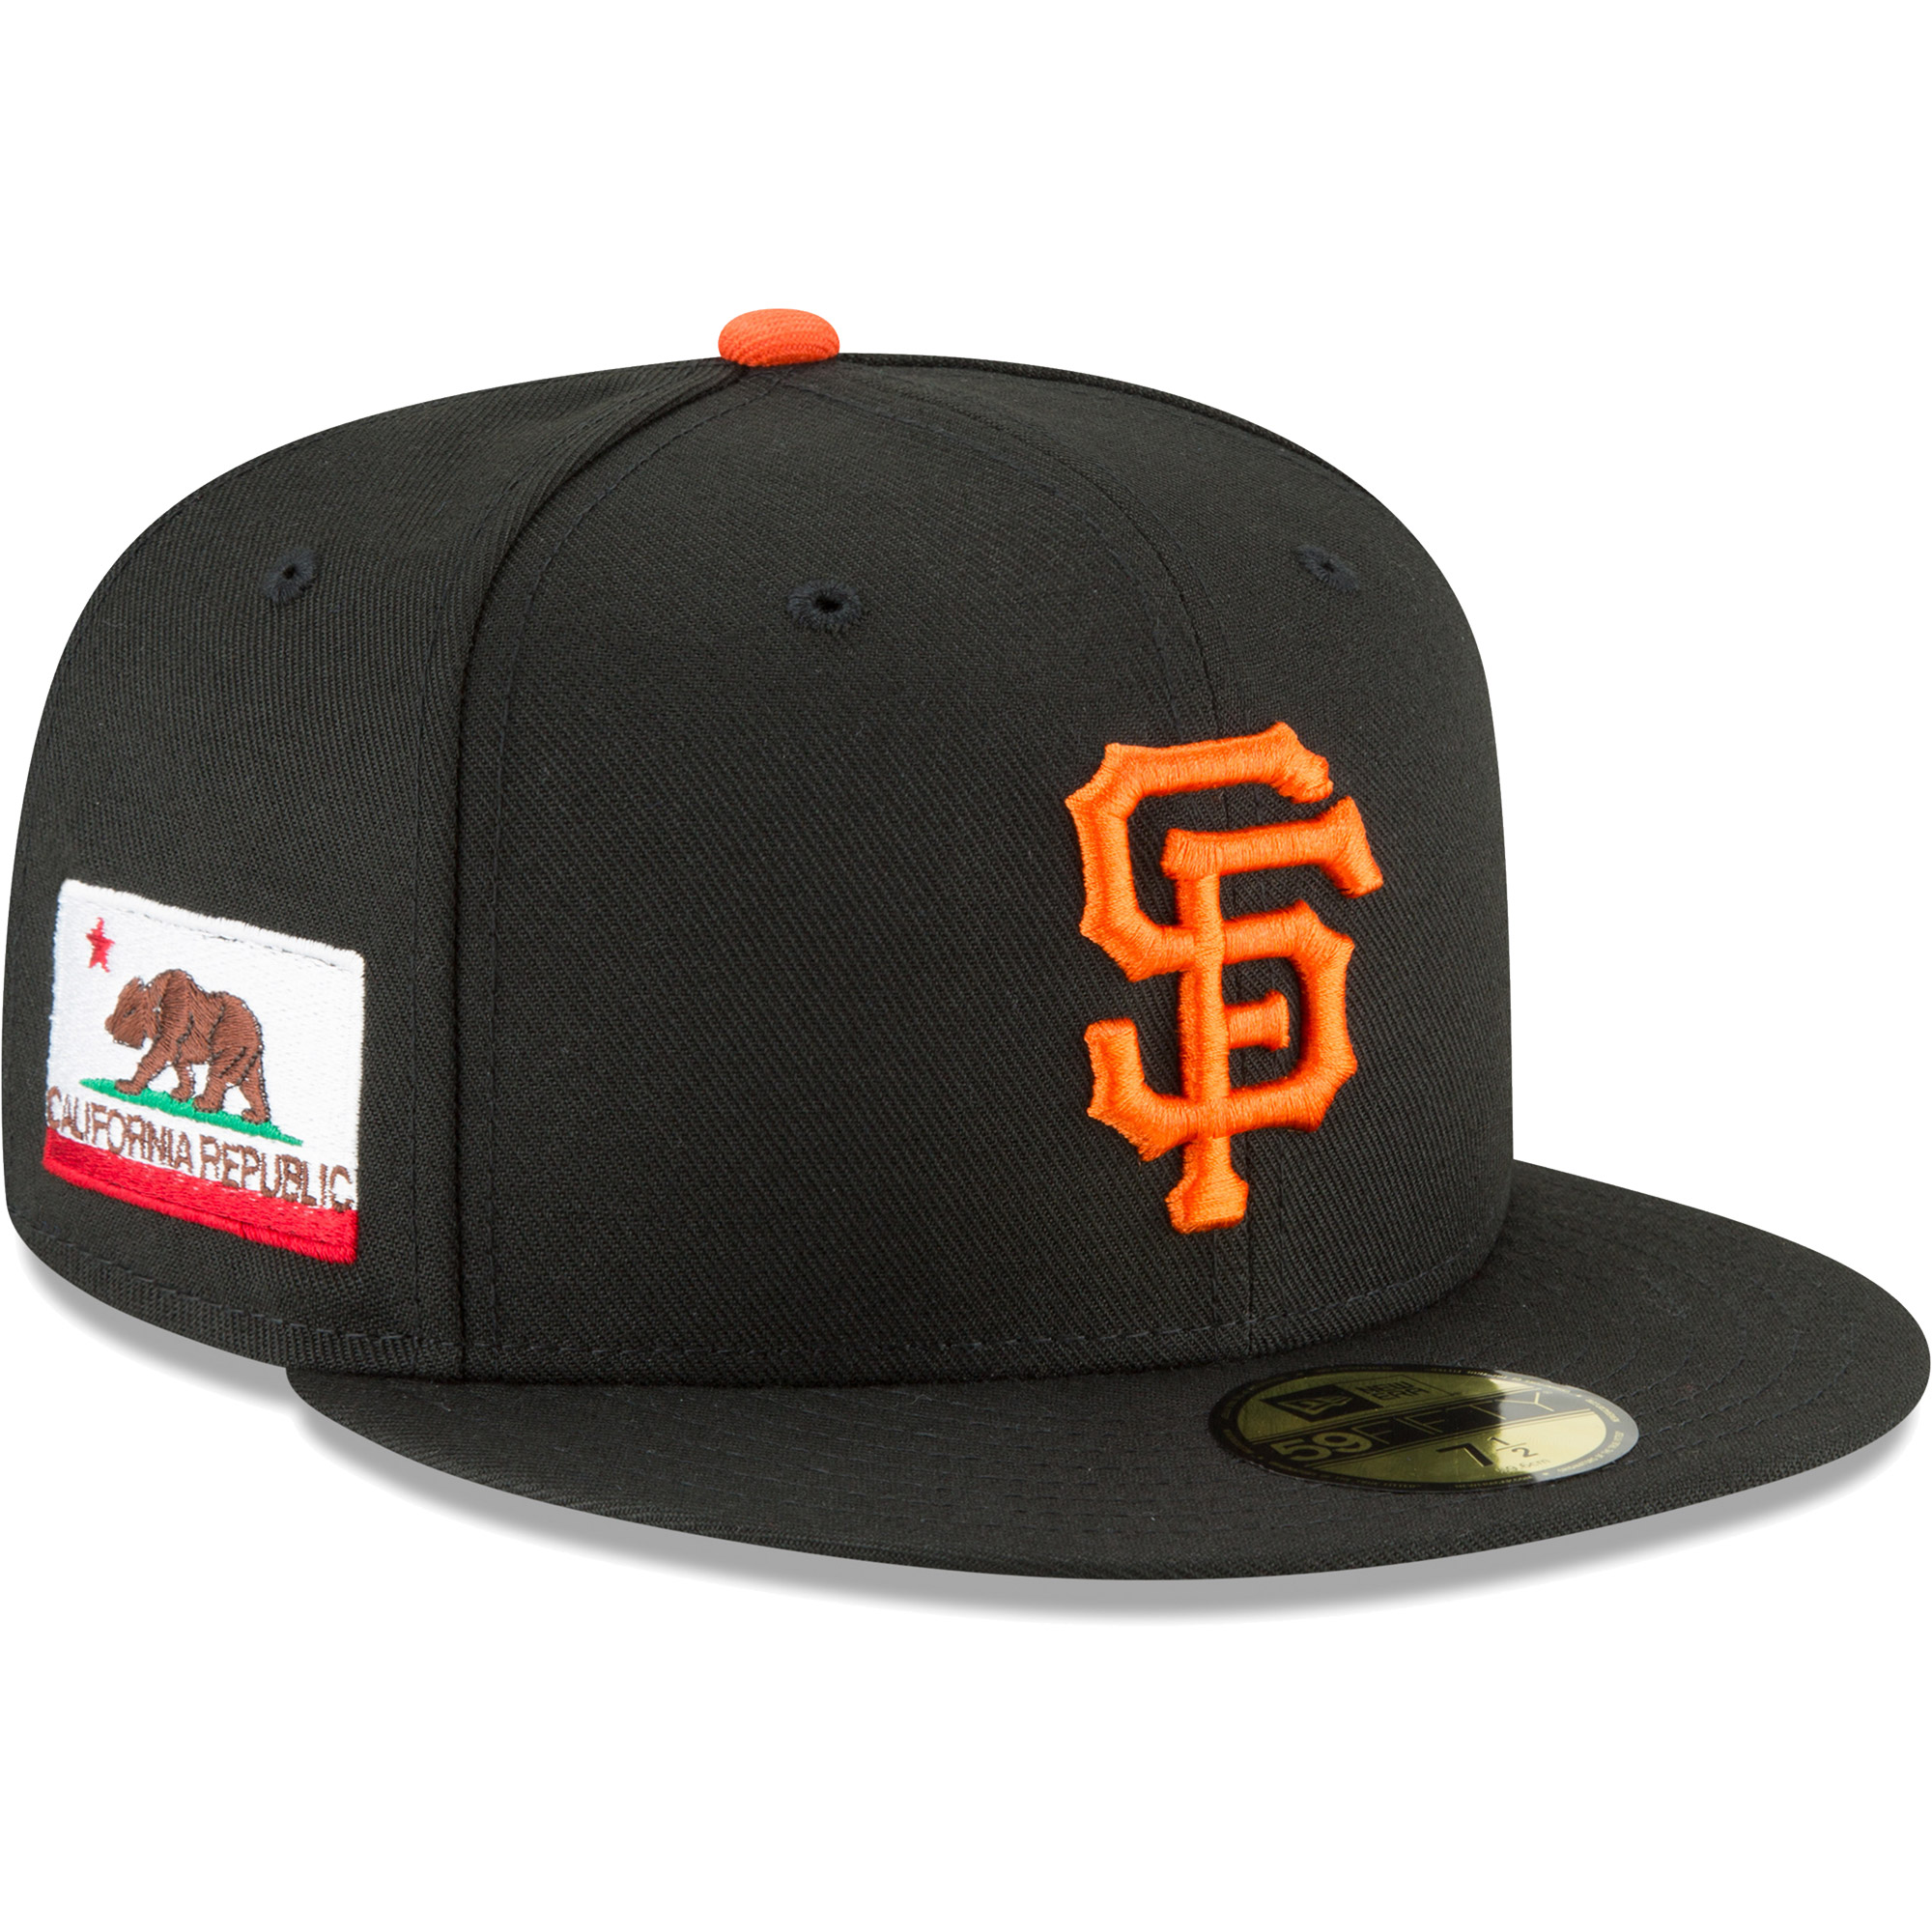 6deb9ceb06267 ... inexpensive product image san francisco giants new era team local  59fifty fitted hat black fb1aa 54955